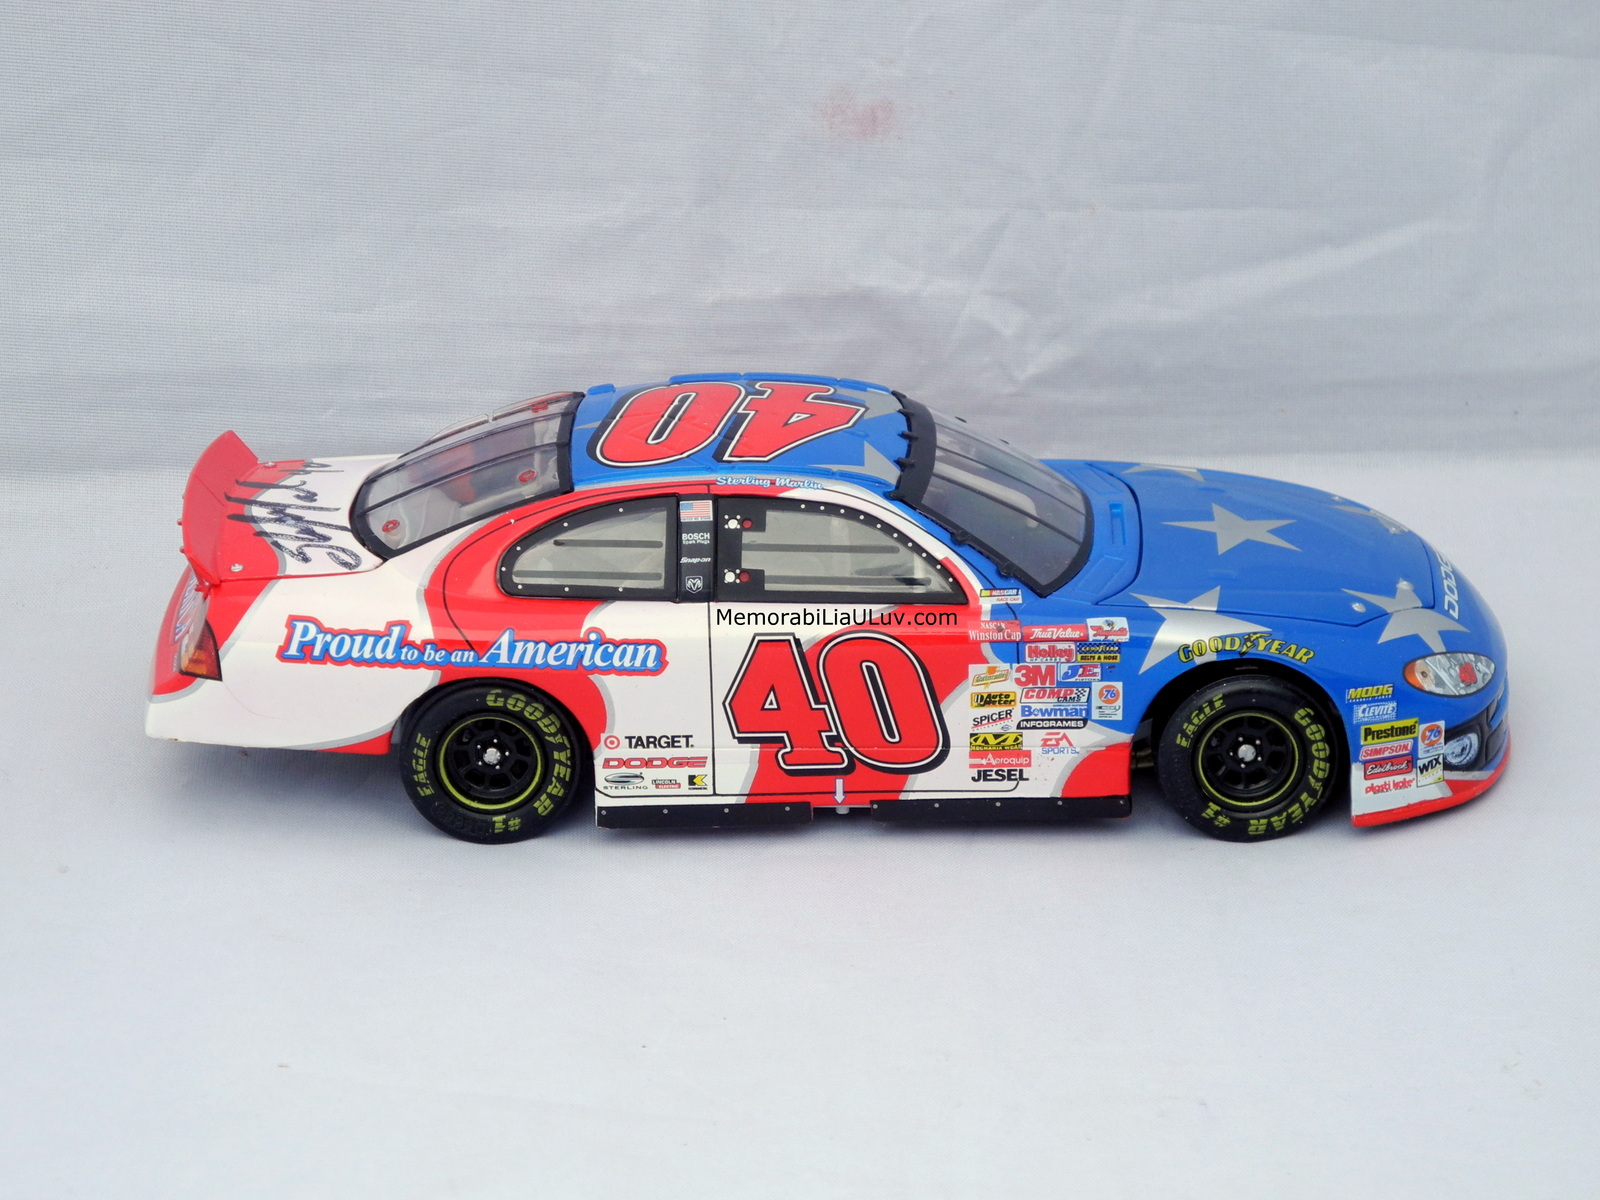 Sterling Marlin Proud to Be an American Signed 1:24 Diecast Model Nascar image 4